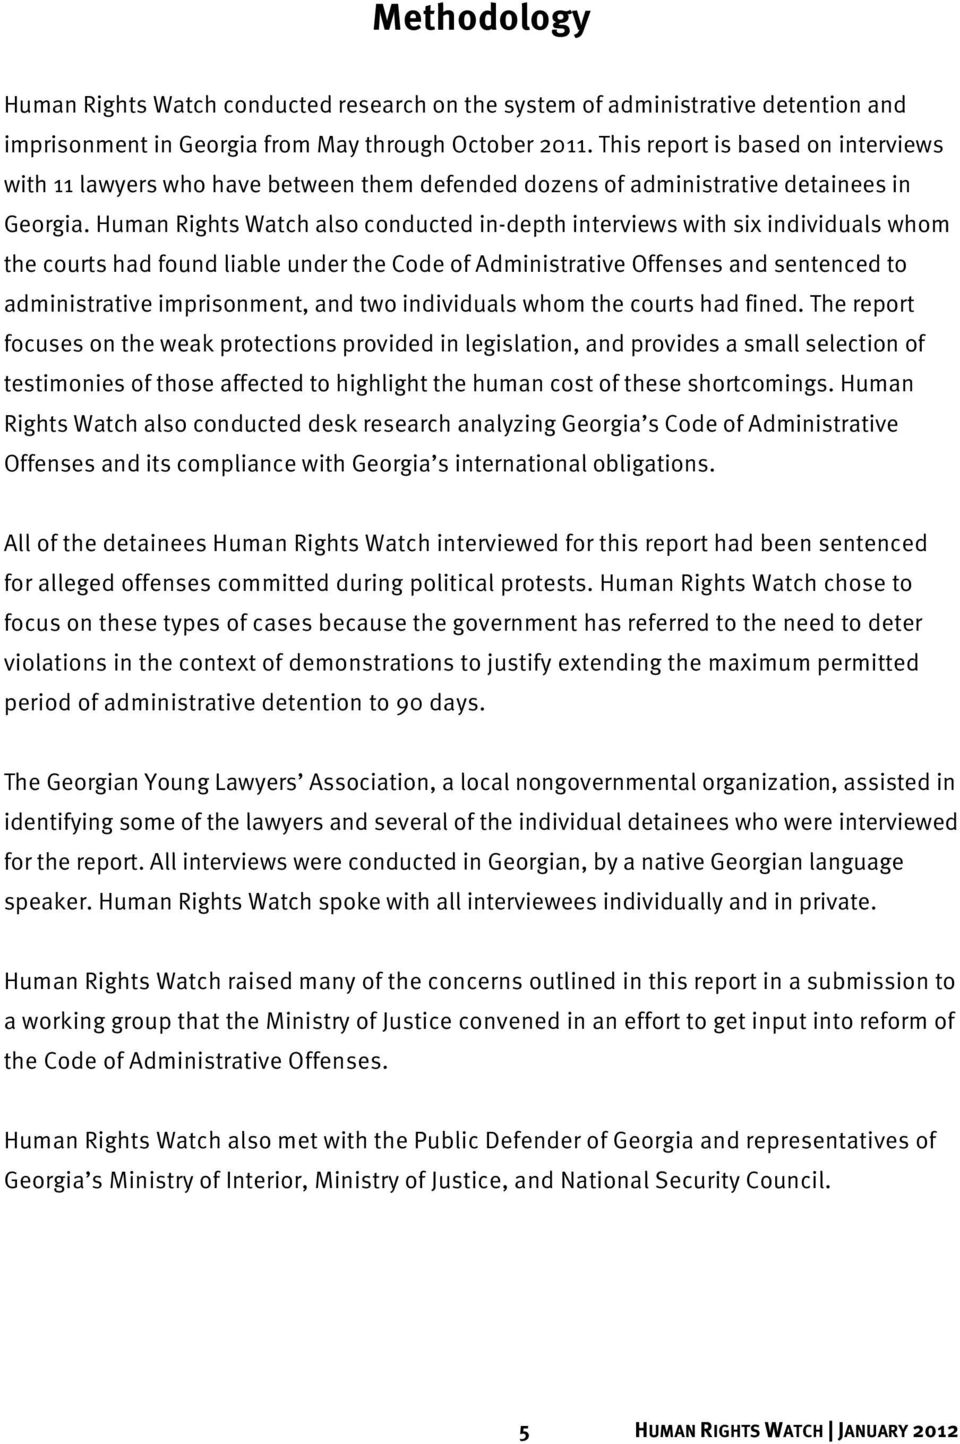 Human Rights Watch also conducted in-depth interviews with six individuals whom the courts had found liable under the Code of Administrative Offenses and sentenced to administrative imprisonment, and